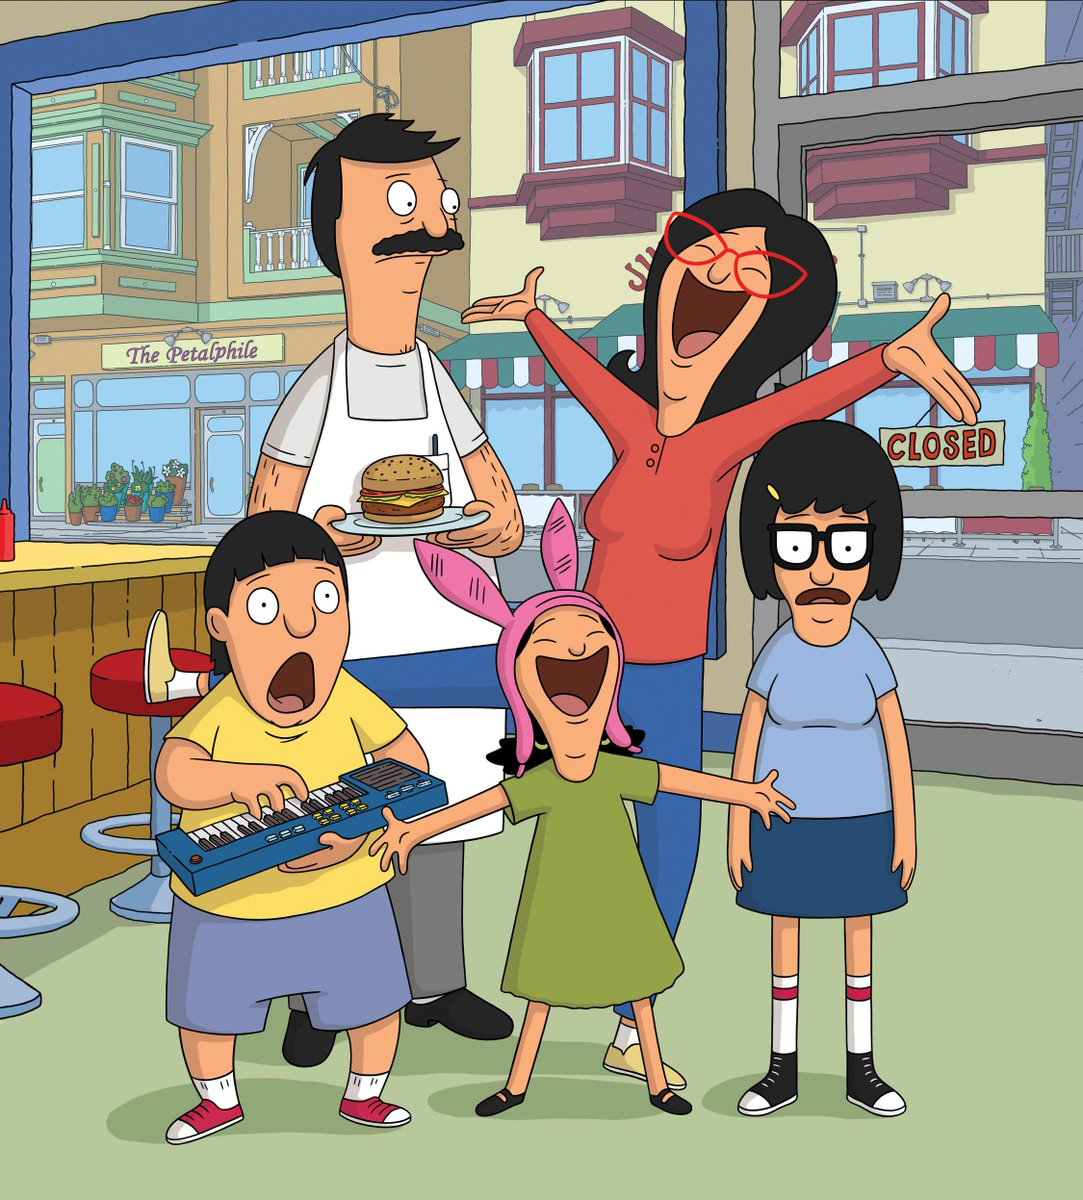 Bobs burgers on twitter lets hear it for bobsburgers being nominated for best animated series at the criticschoice tv awards tonight